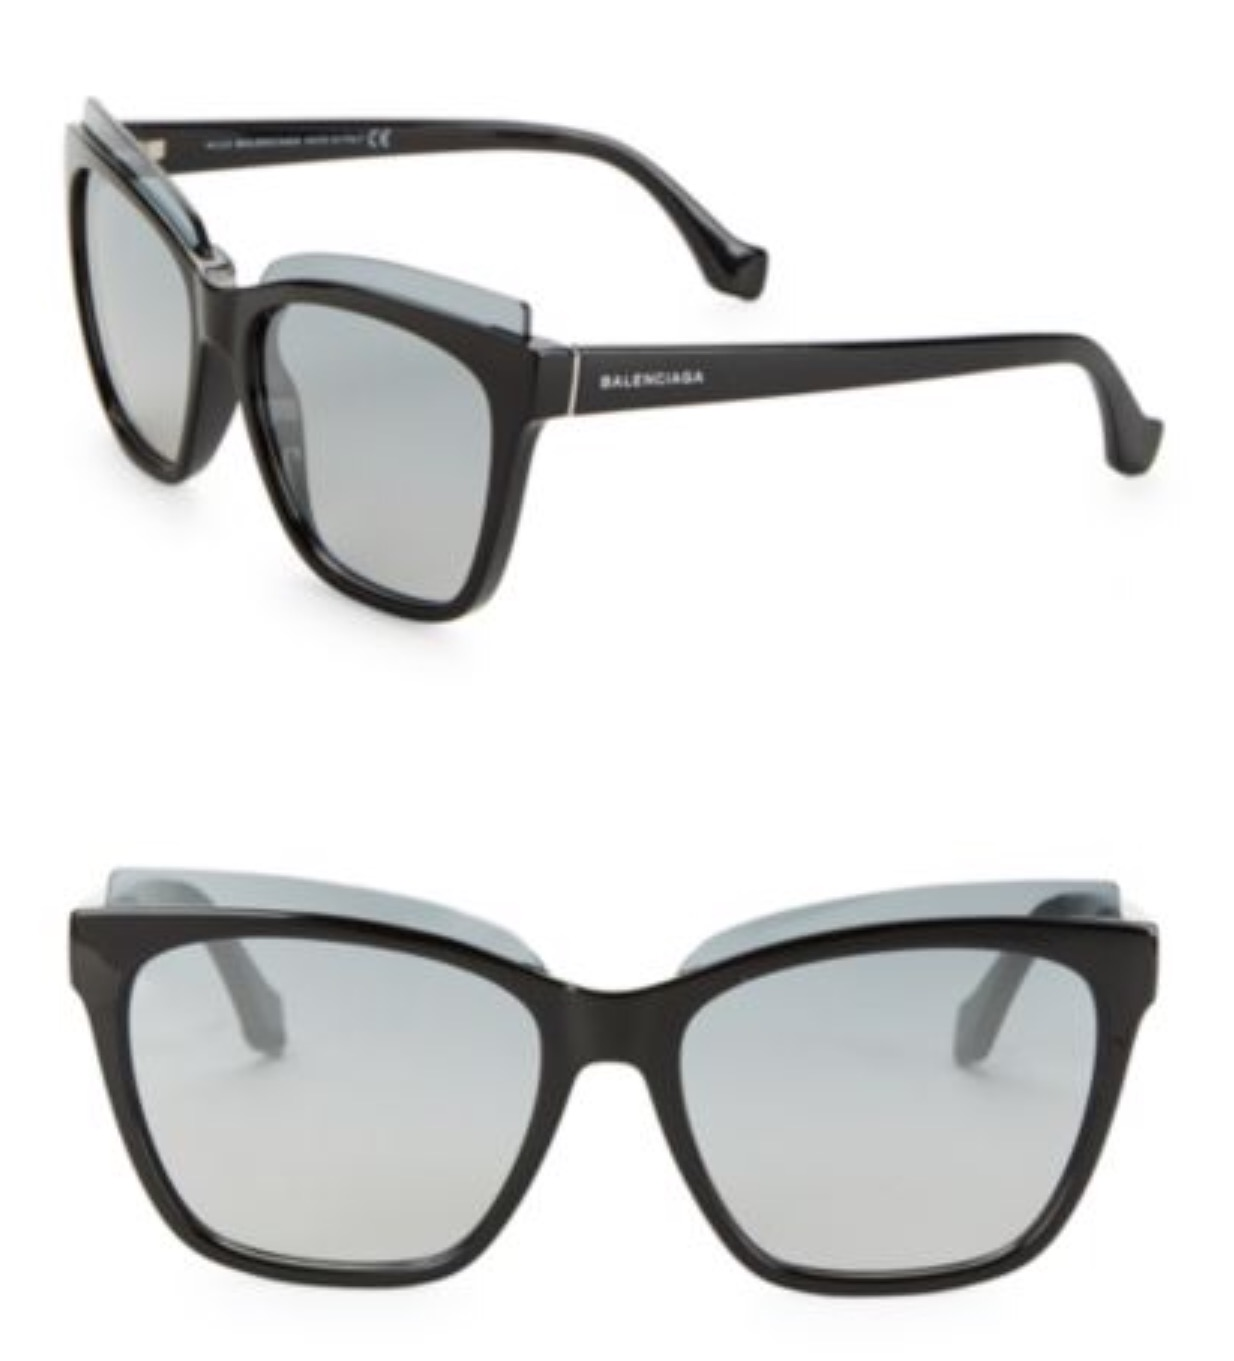 New Authentic Balenciaga Black/Gray Sunglasses